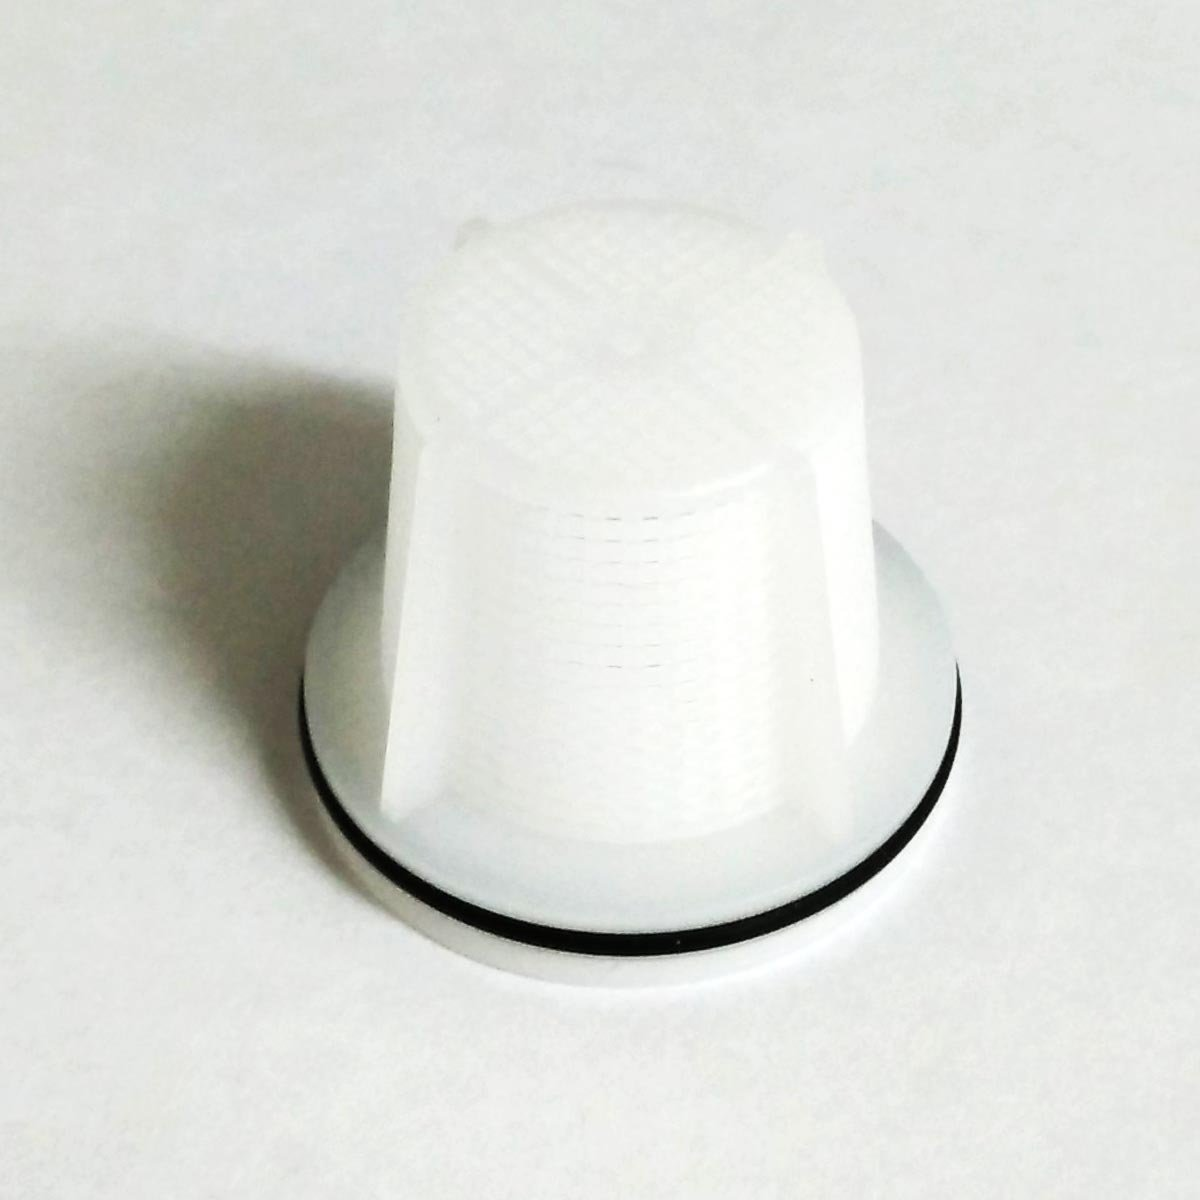 Gaggia Saeco External Filter Cones for Water Resovoir 224640200